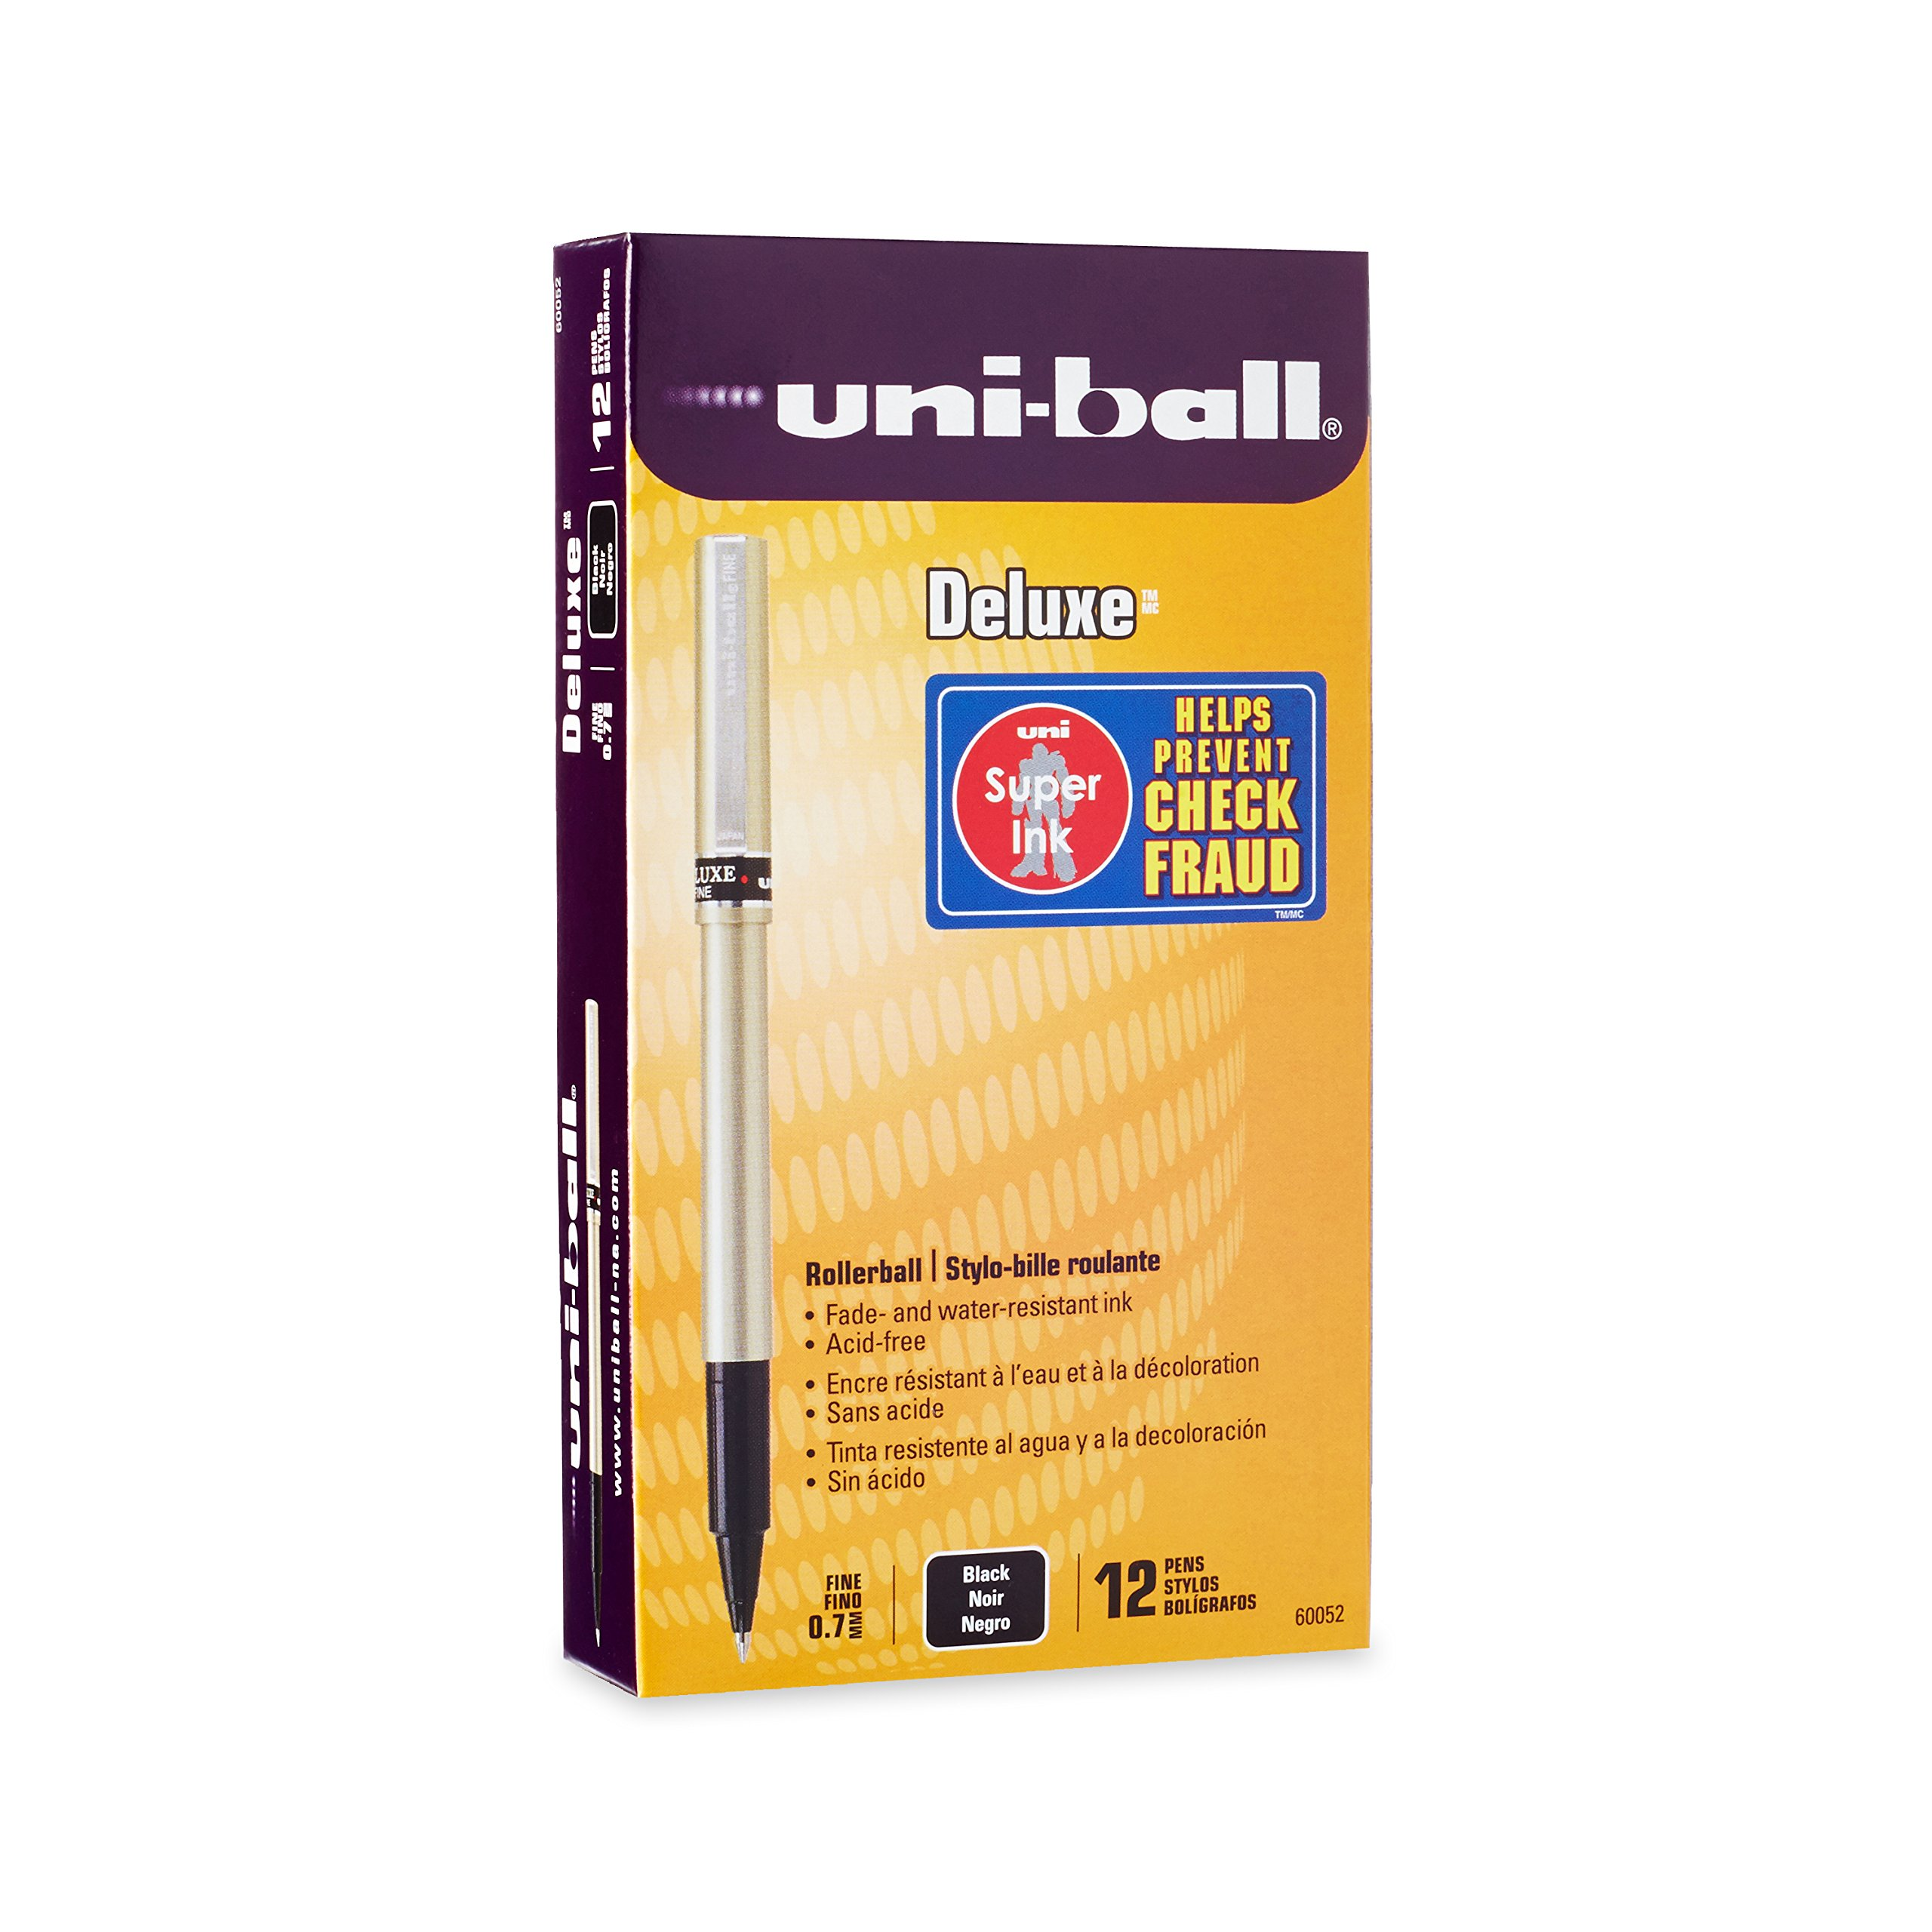 uni-ball Deluxe Rollerball Pens, Fine Point (0.7mm), Black, 12 Count